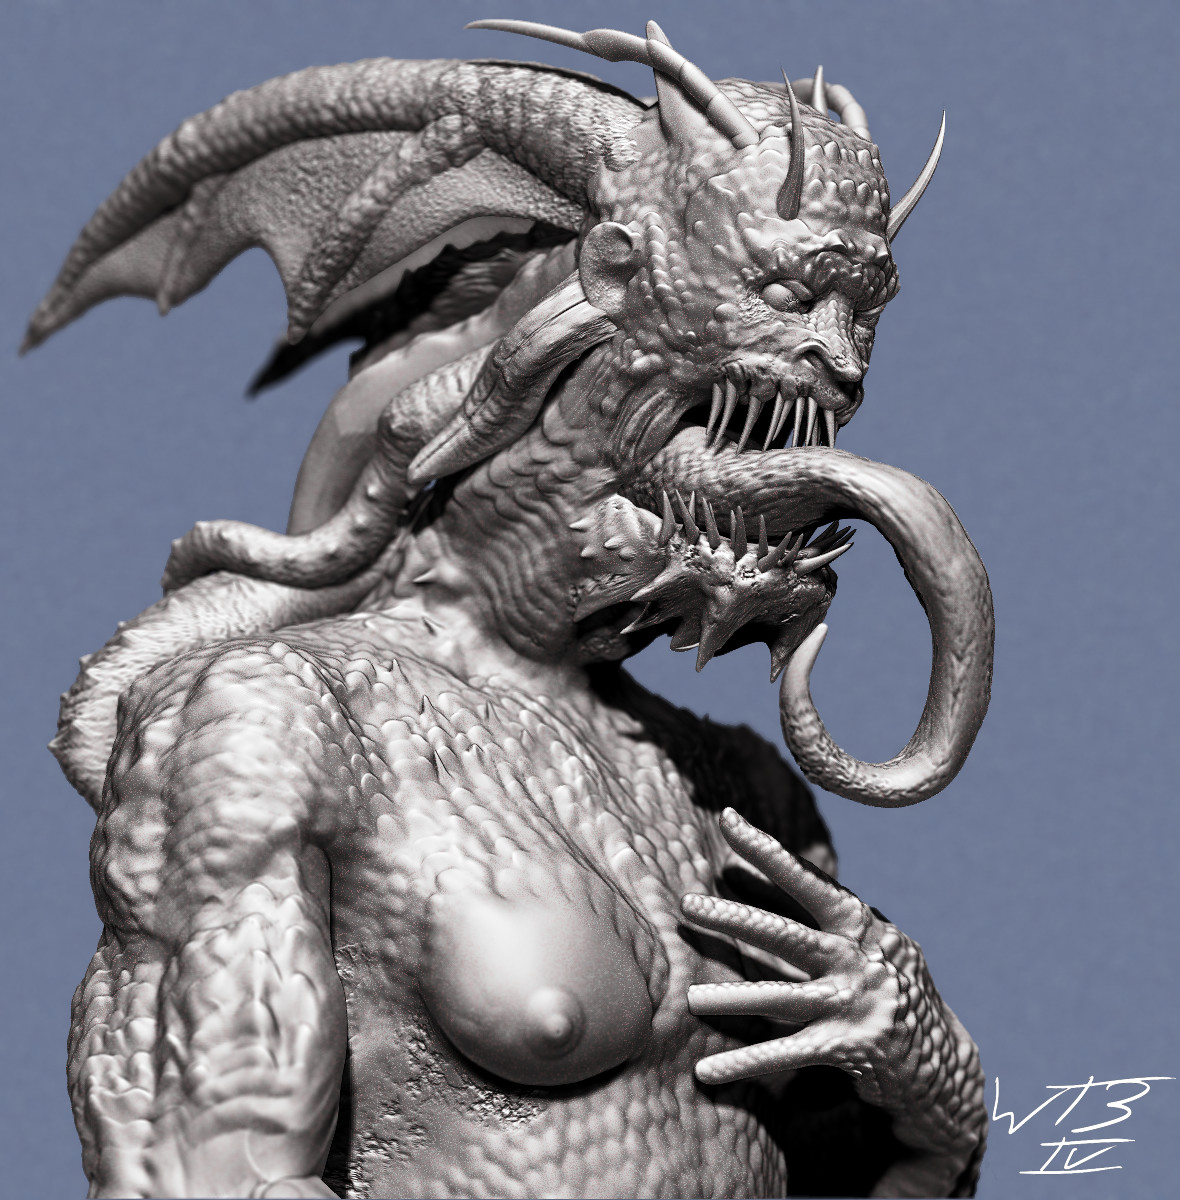 William bulger demon zbrush